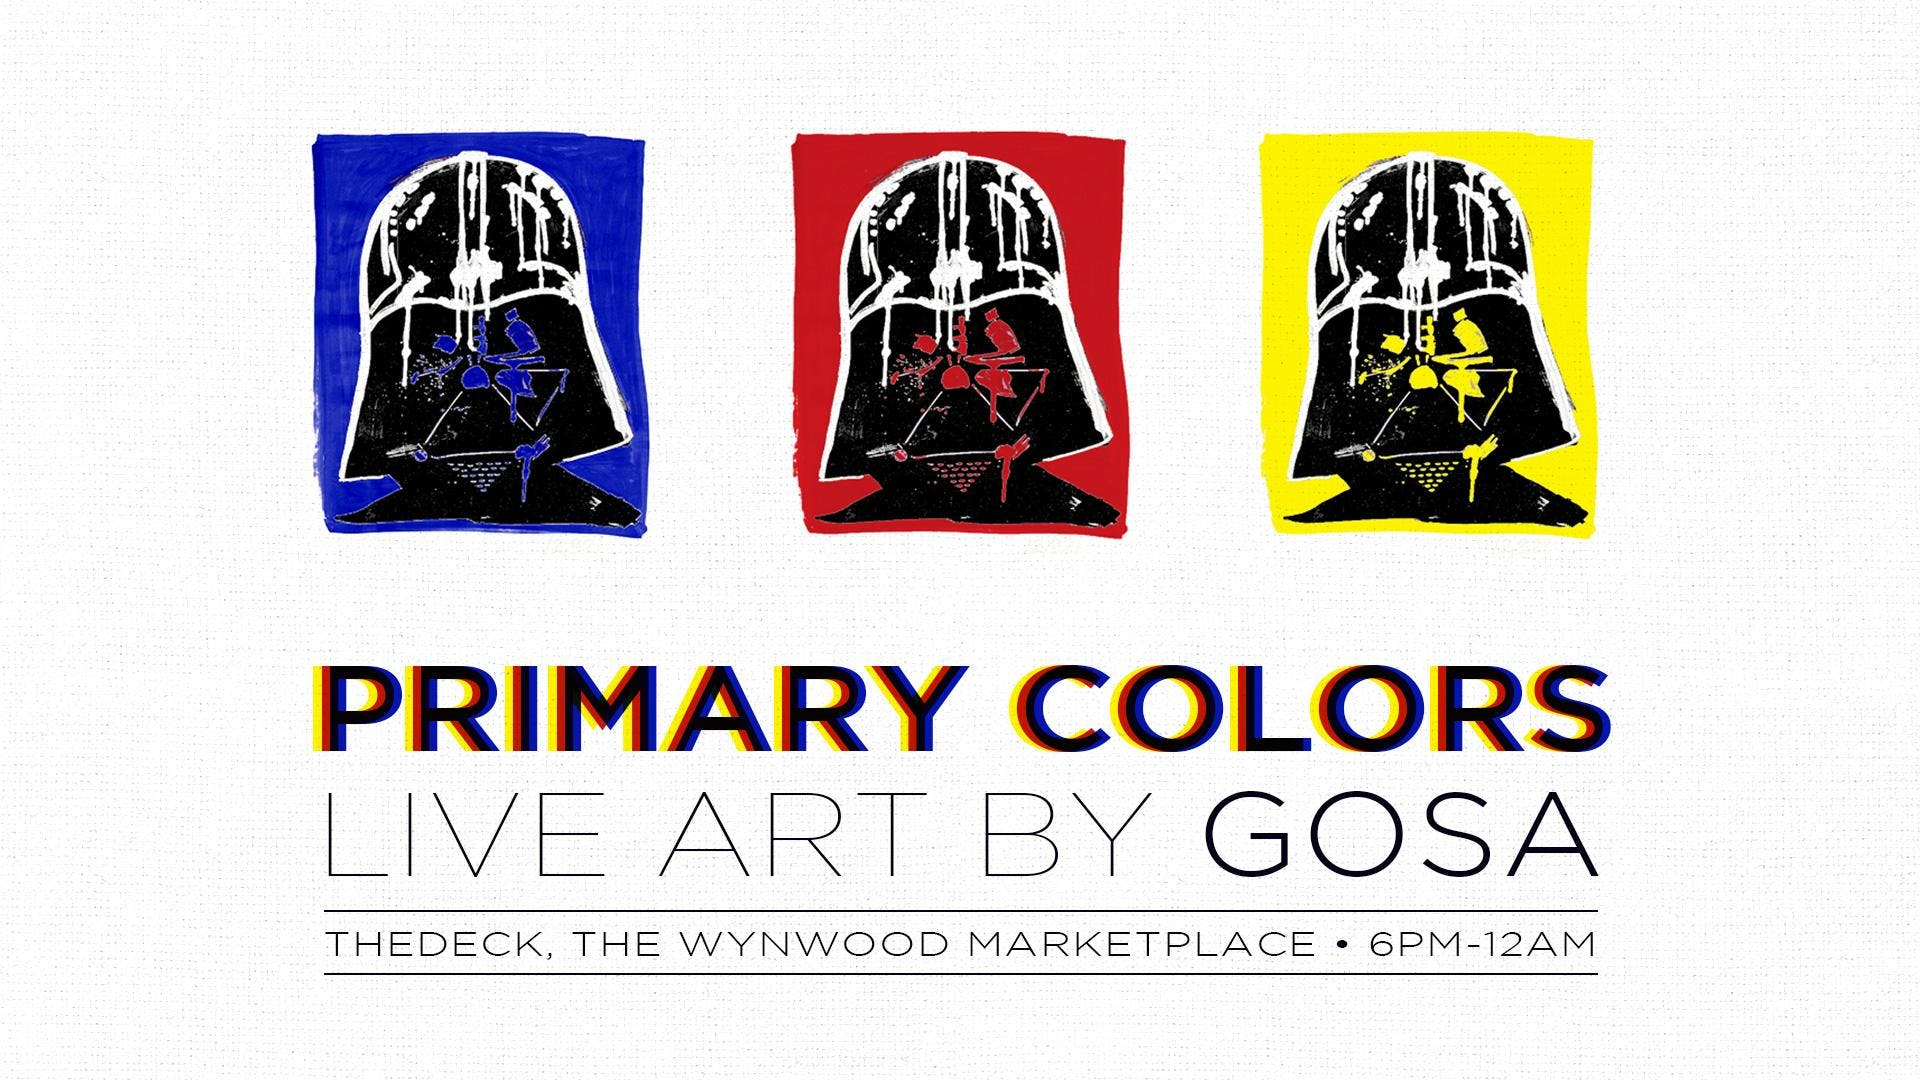 Primary Colors at thedeck